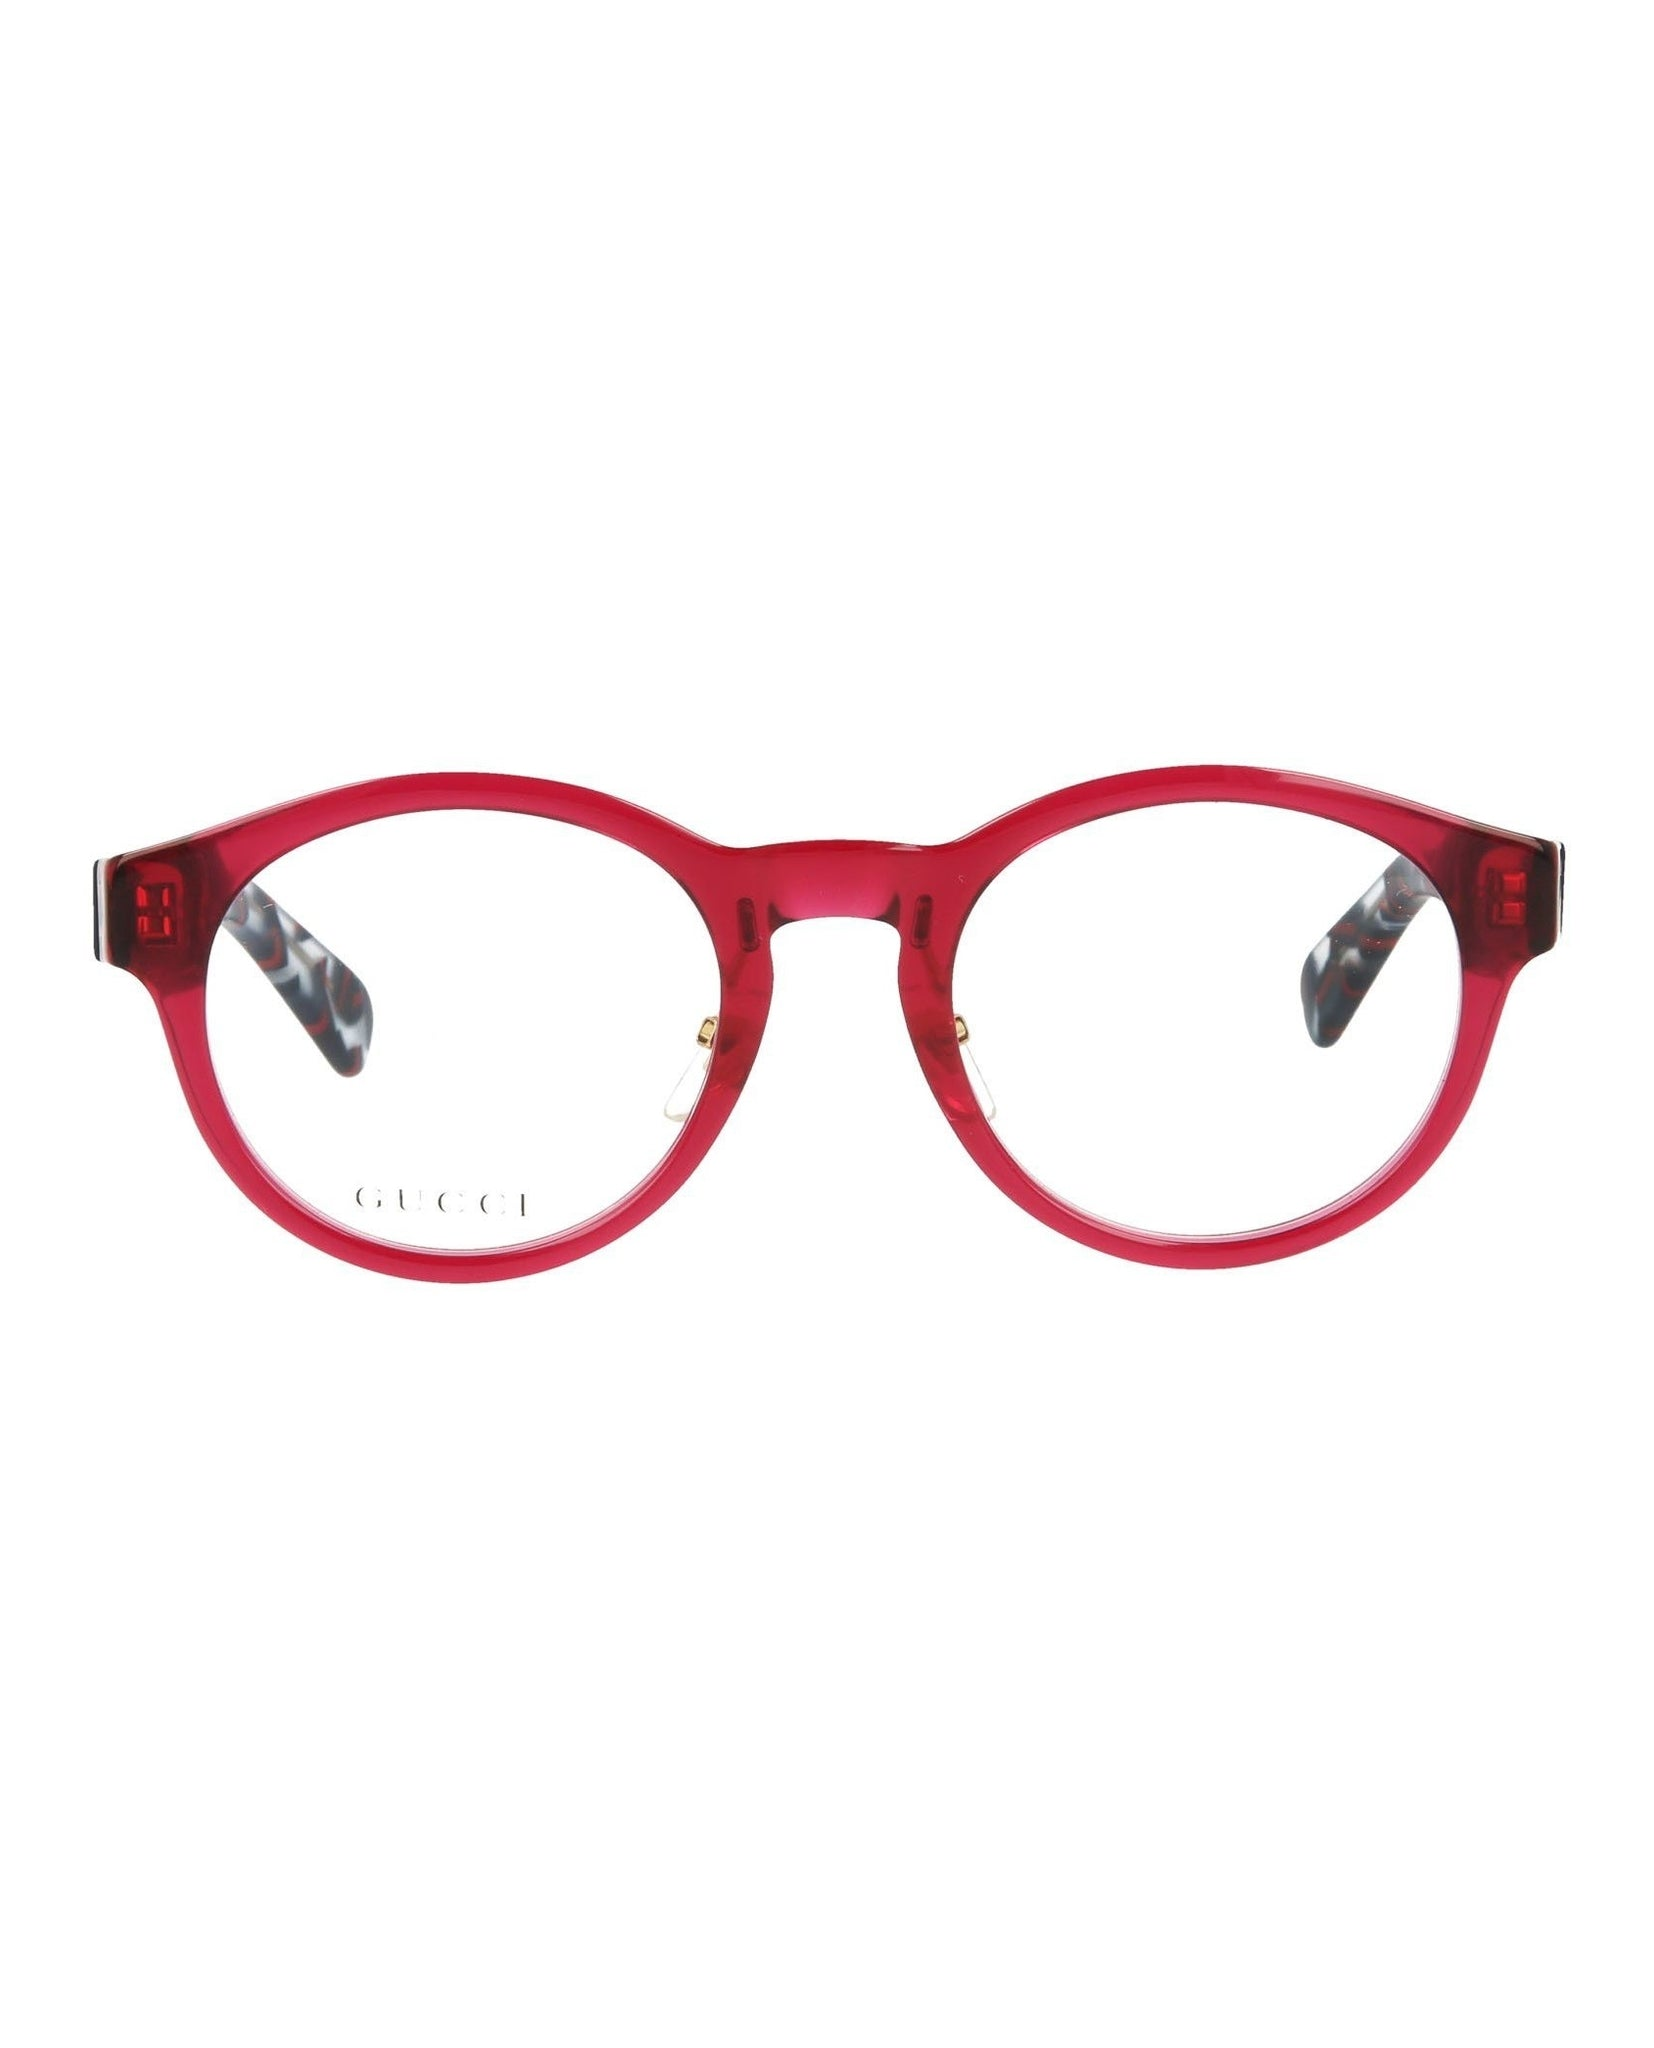 d8f97b16d4 Gucci Womens Round Oval Optical Frames